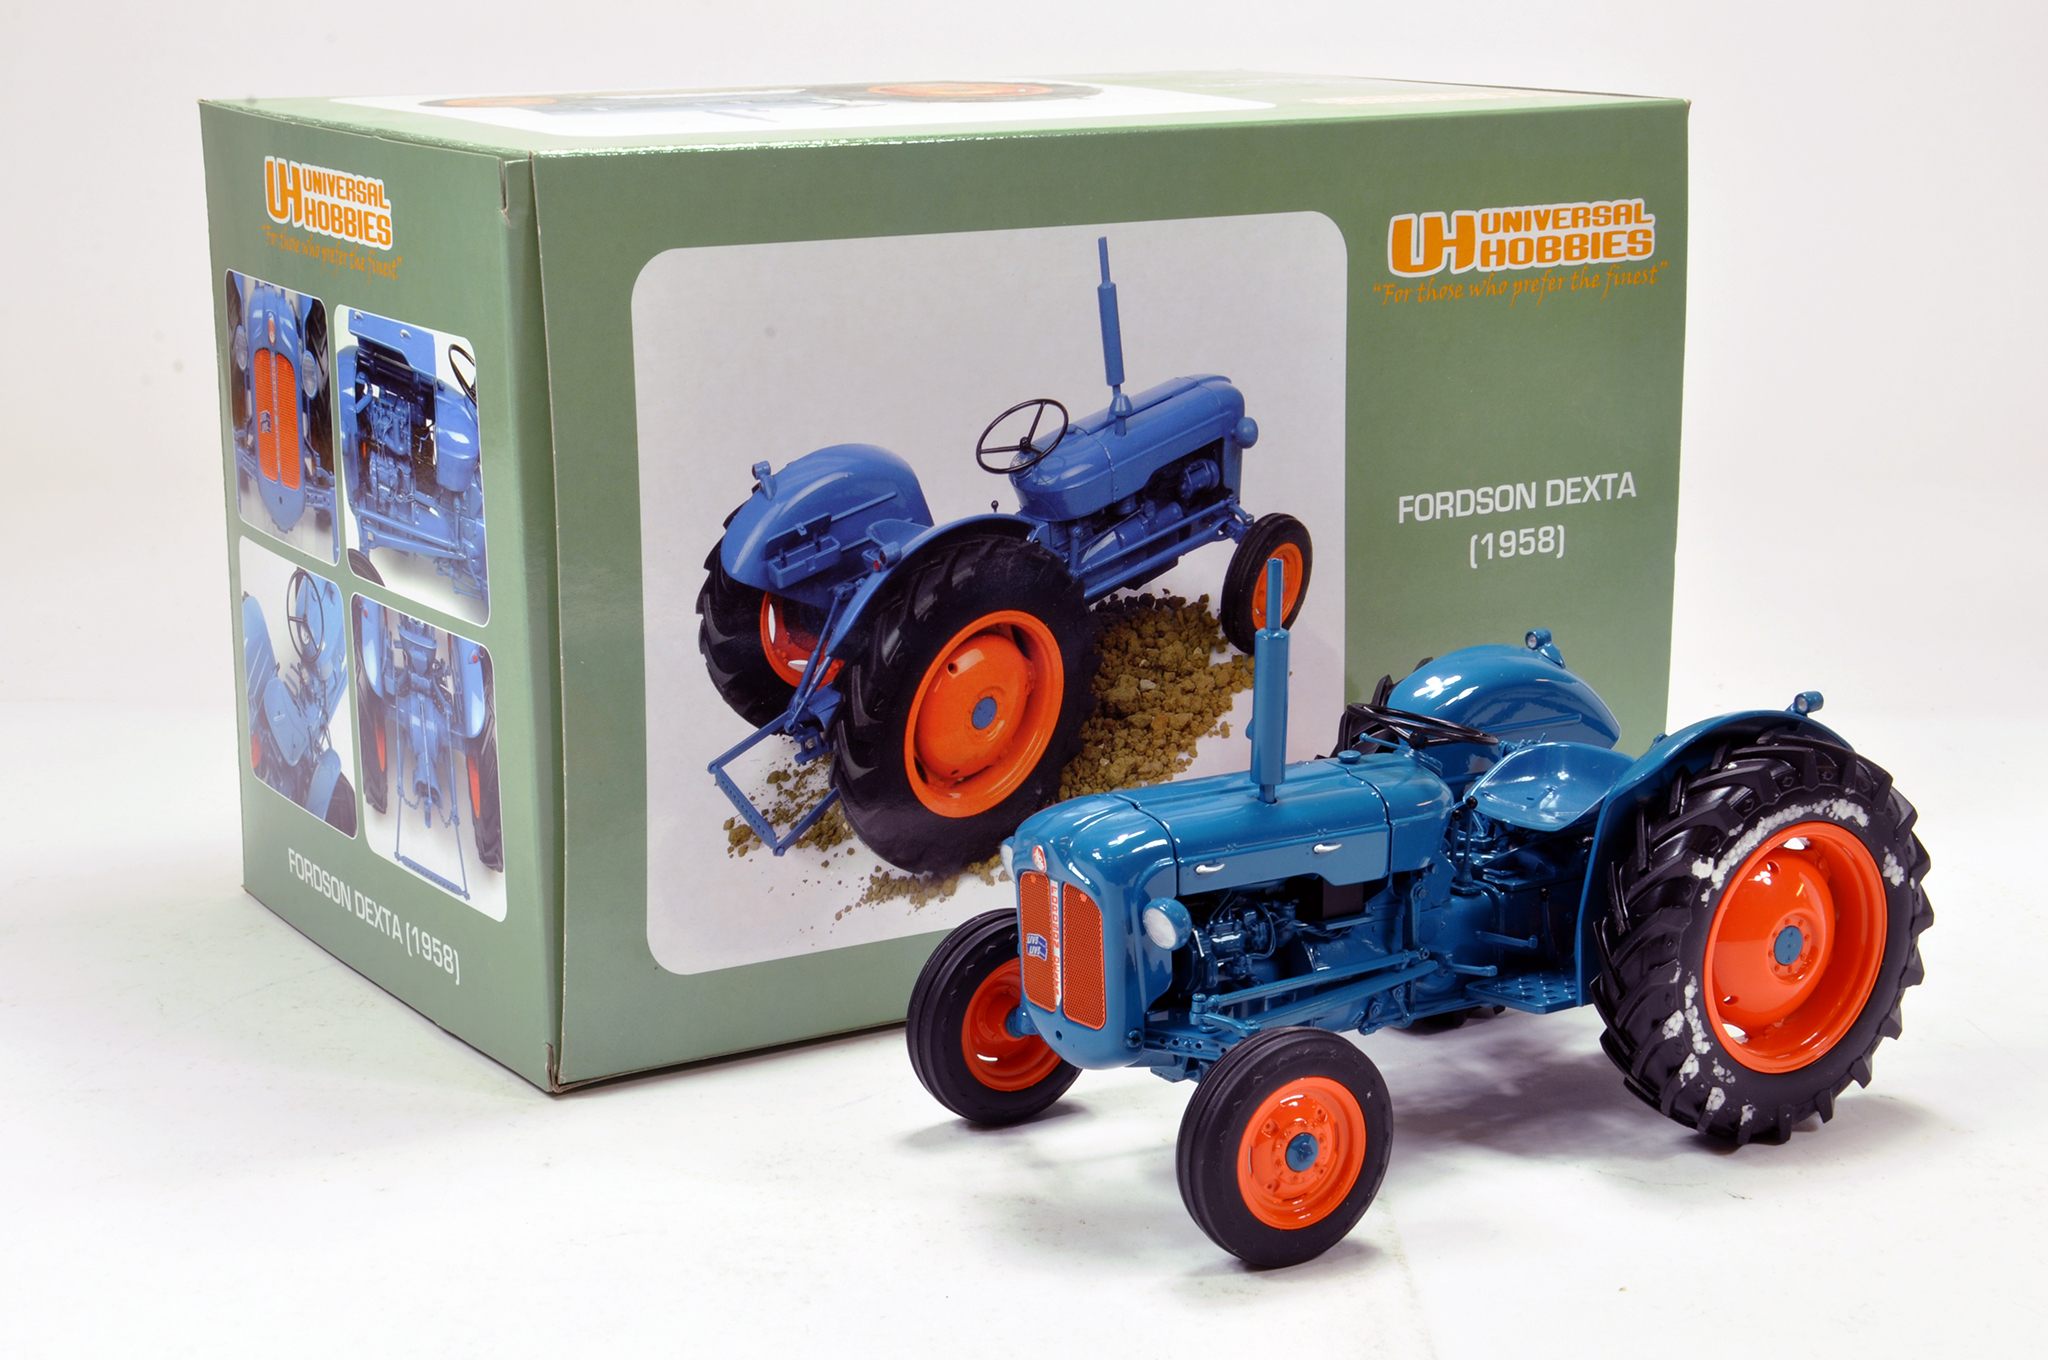 Lot 144 - Universal hobbies 1/16 Fordson Dexta Tractor from 1958. Generally excellent in box.